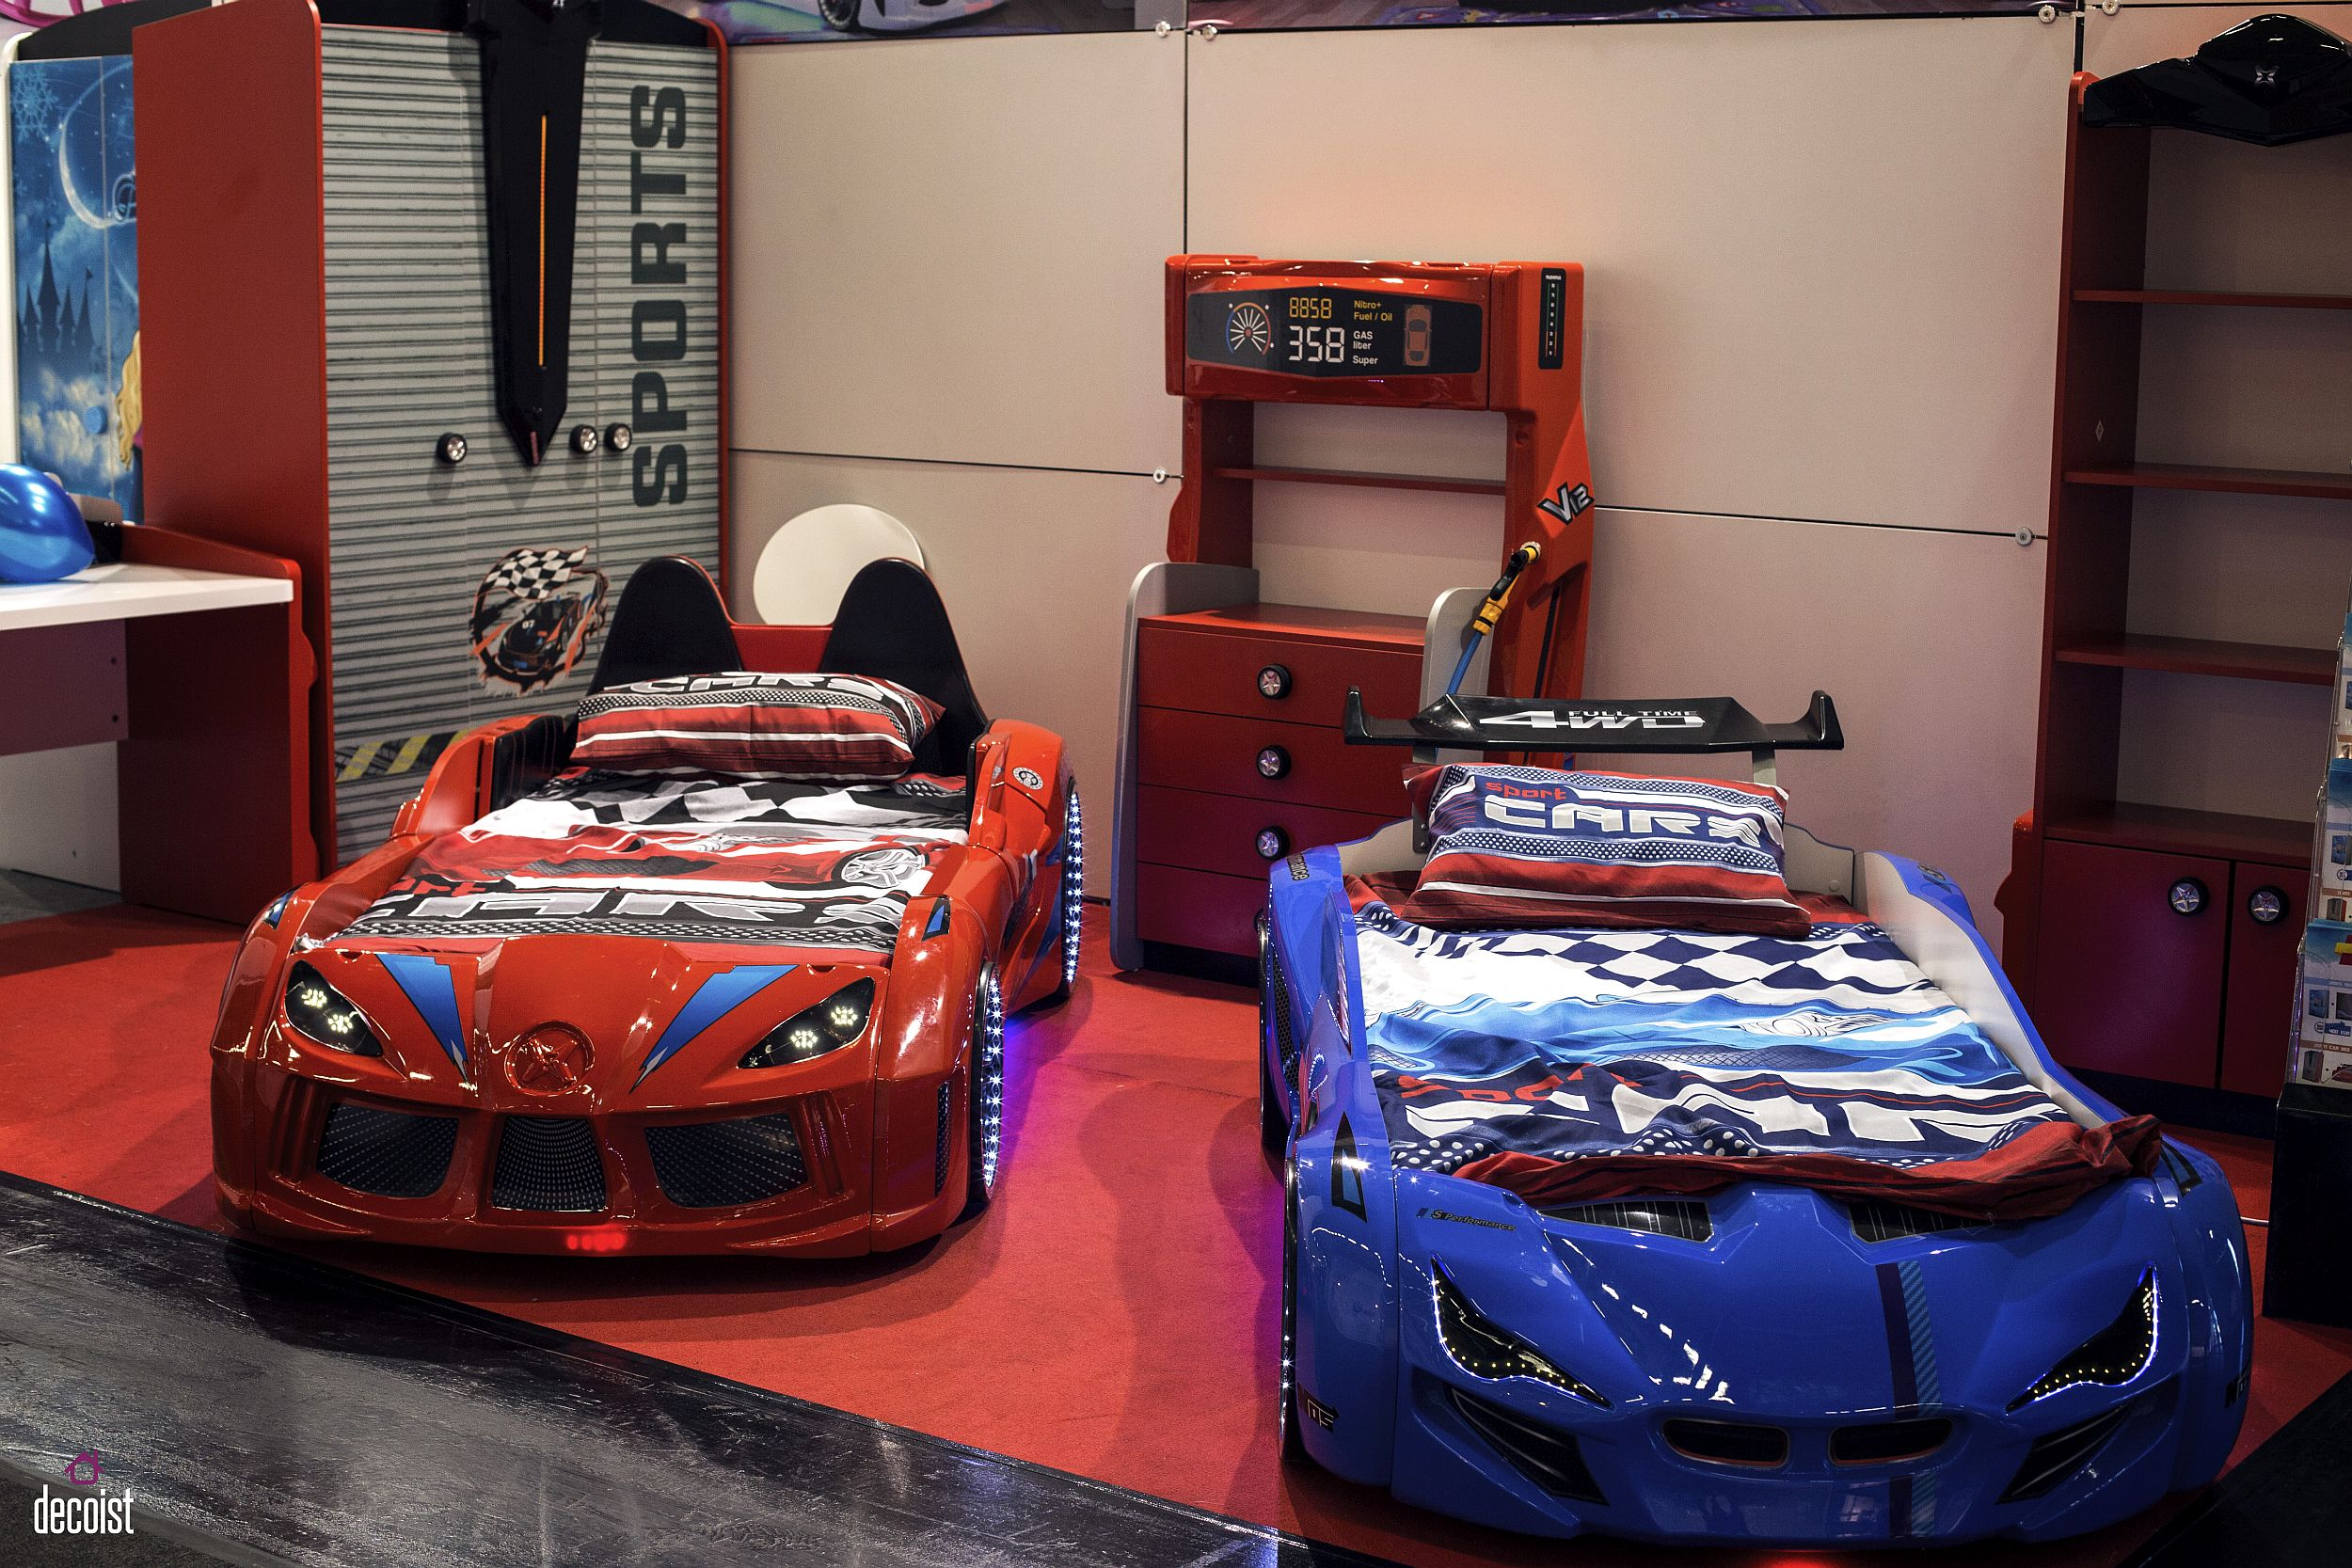 Race-car-kids-beds-in-red-and-blue-with-matching-decor